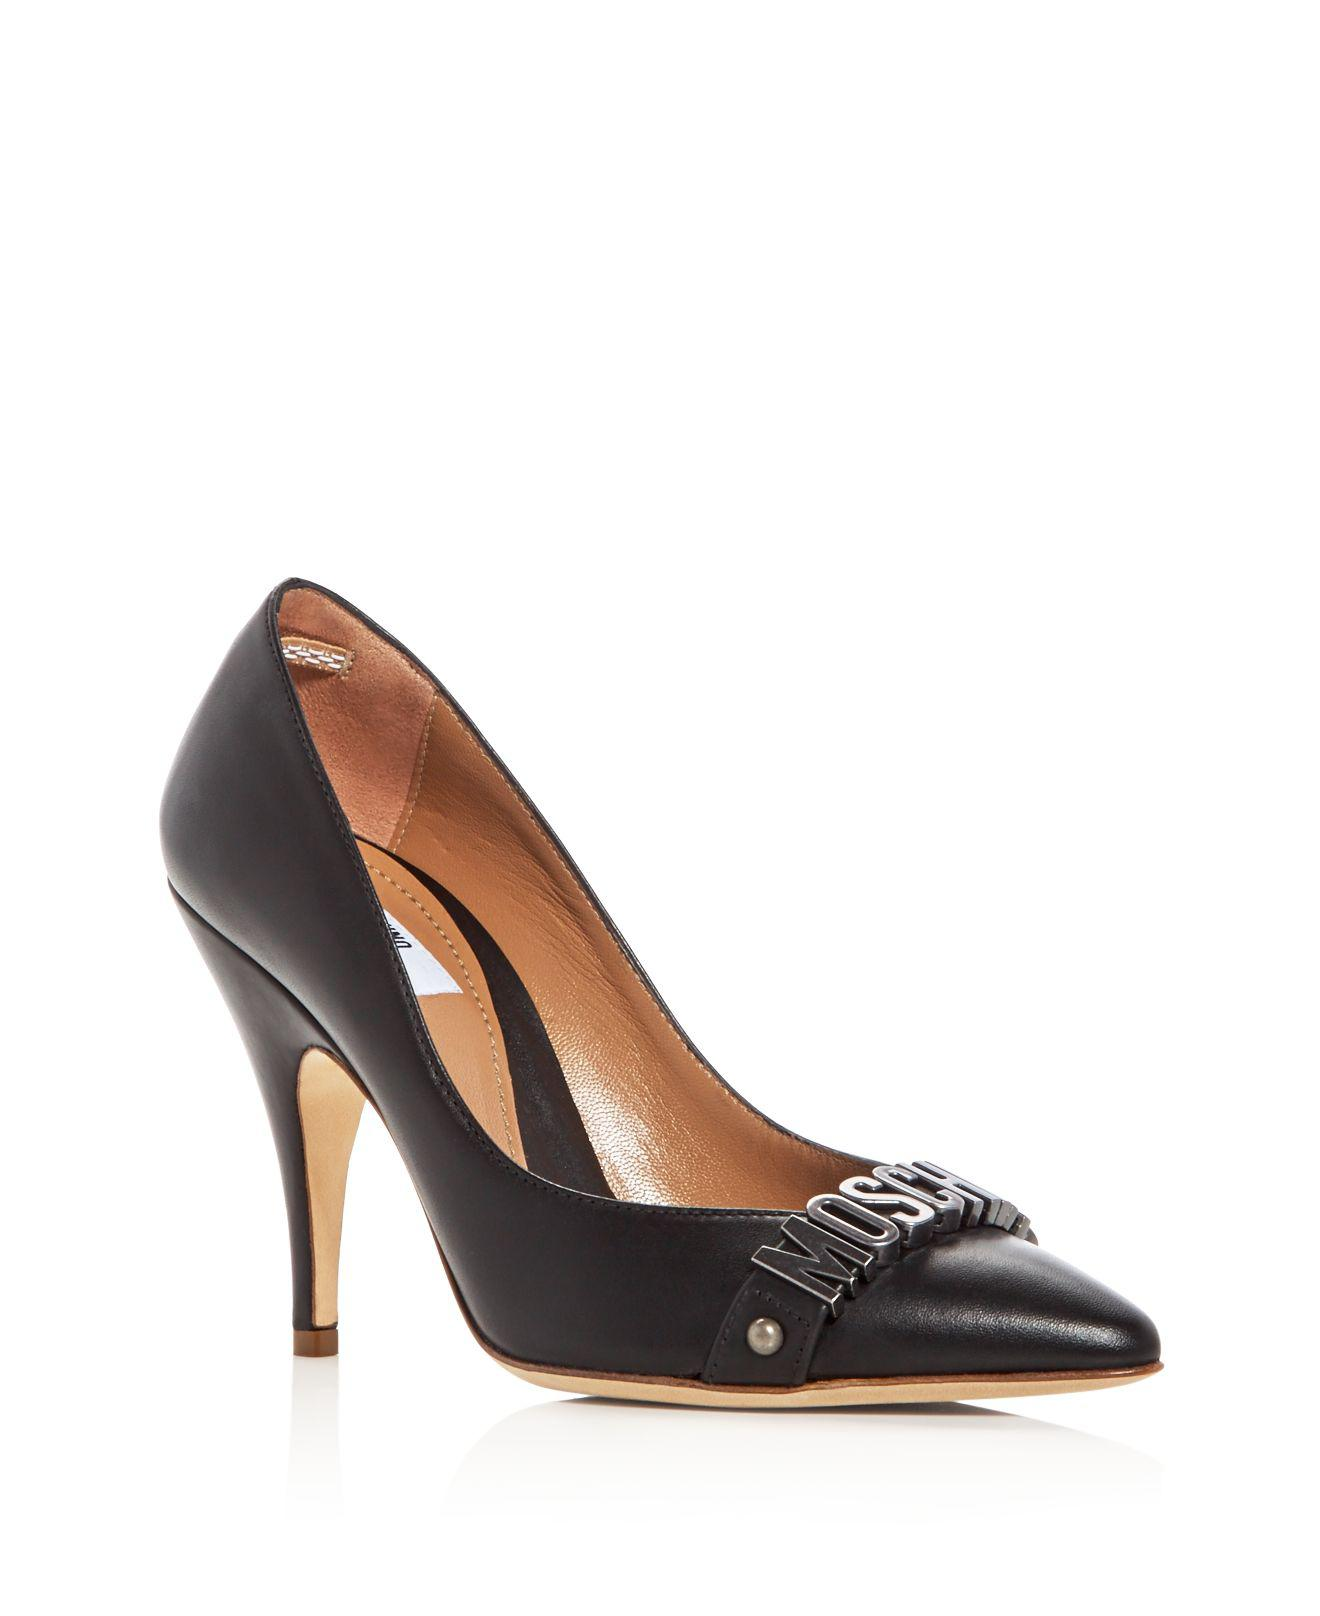 Moschino Brogue Peep-Toe Pumps free shipping finishline outlet collections MAcHBH